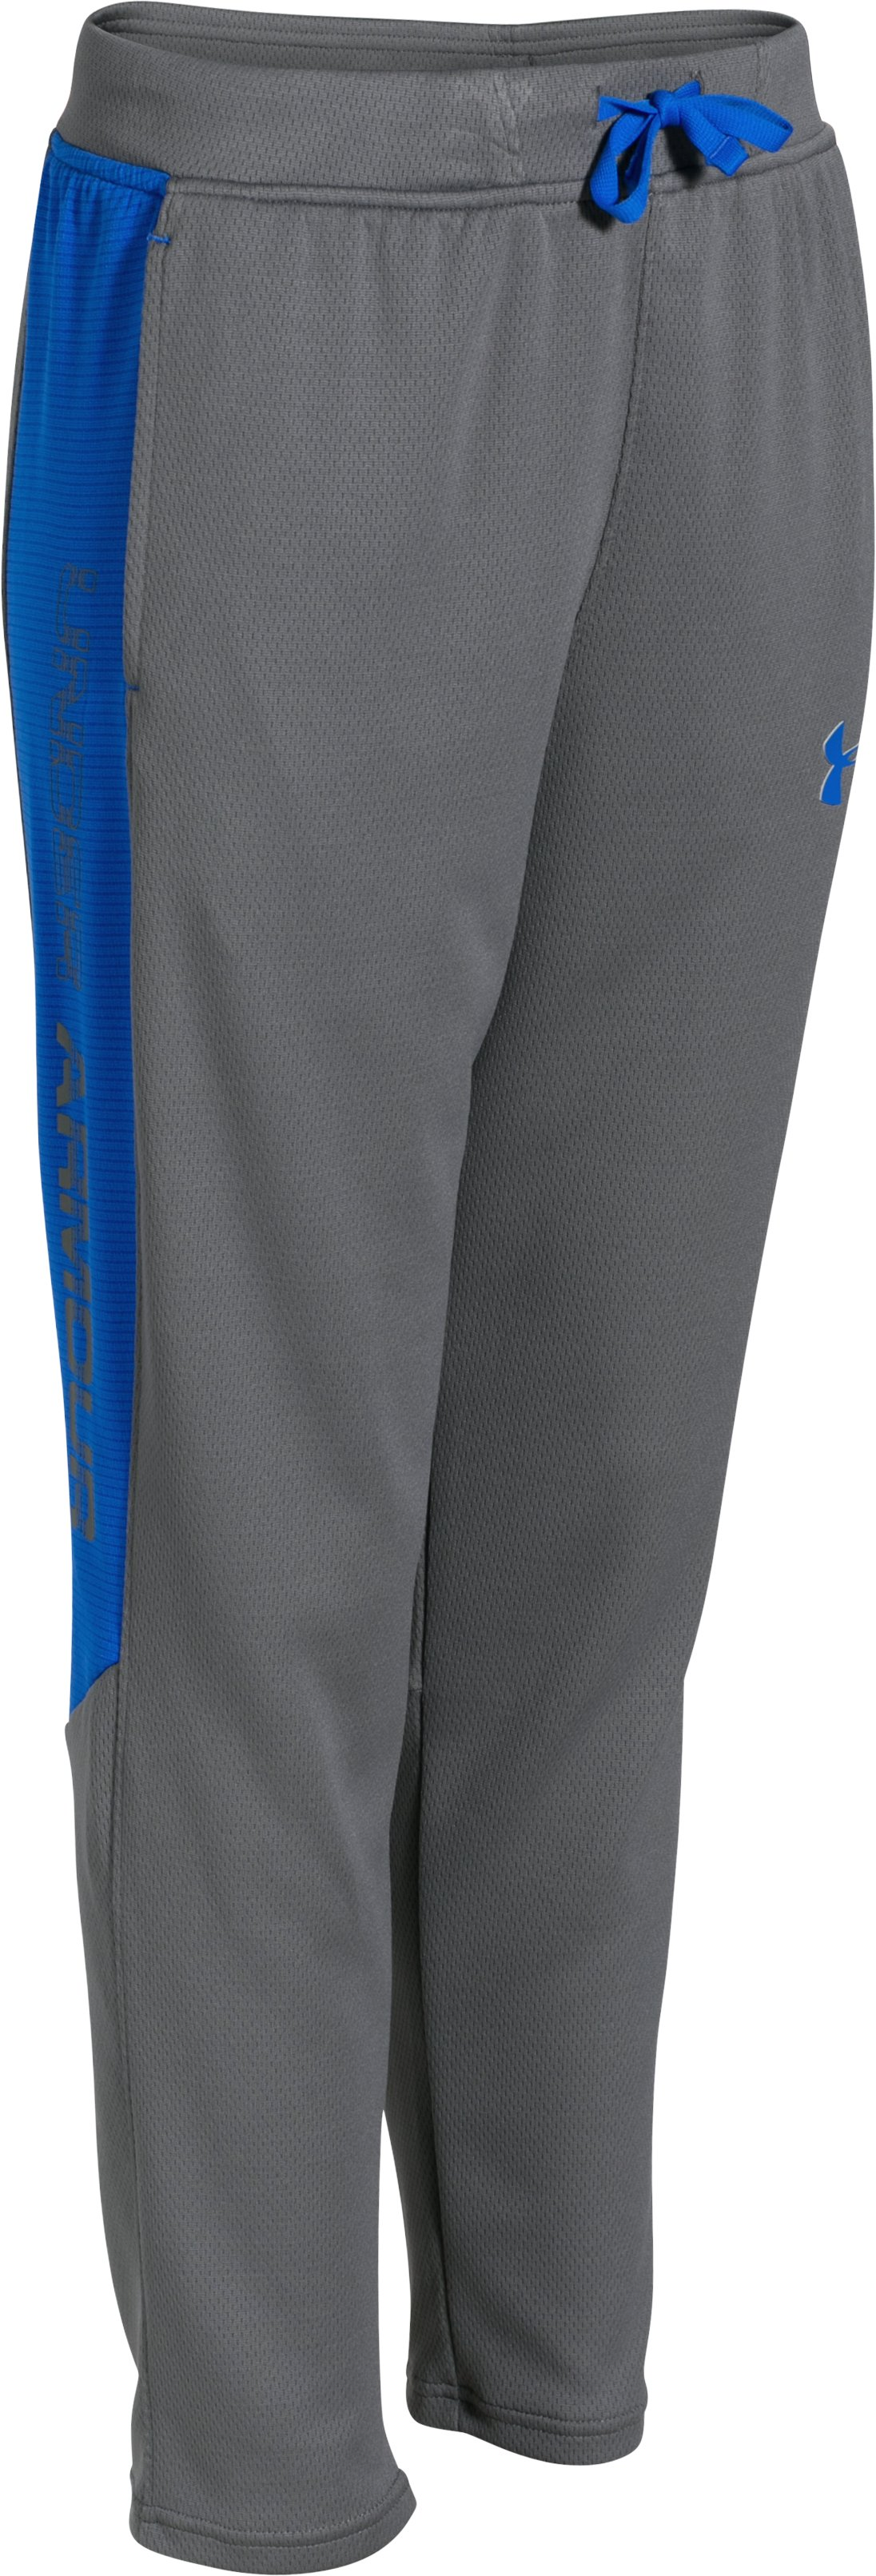 Boys' UA Select Warm-Up Pants, Graphite, zoomed image